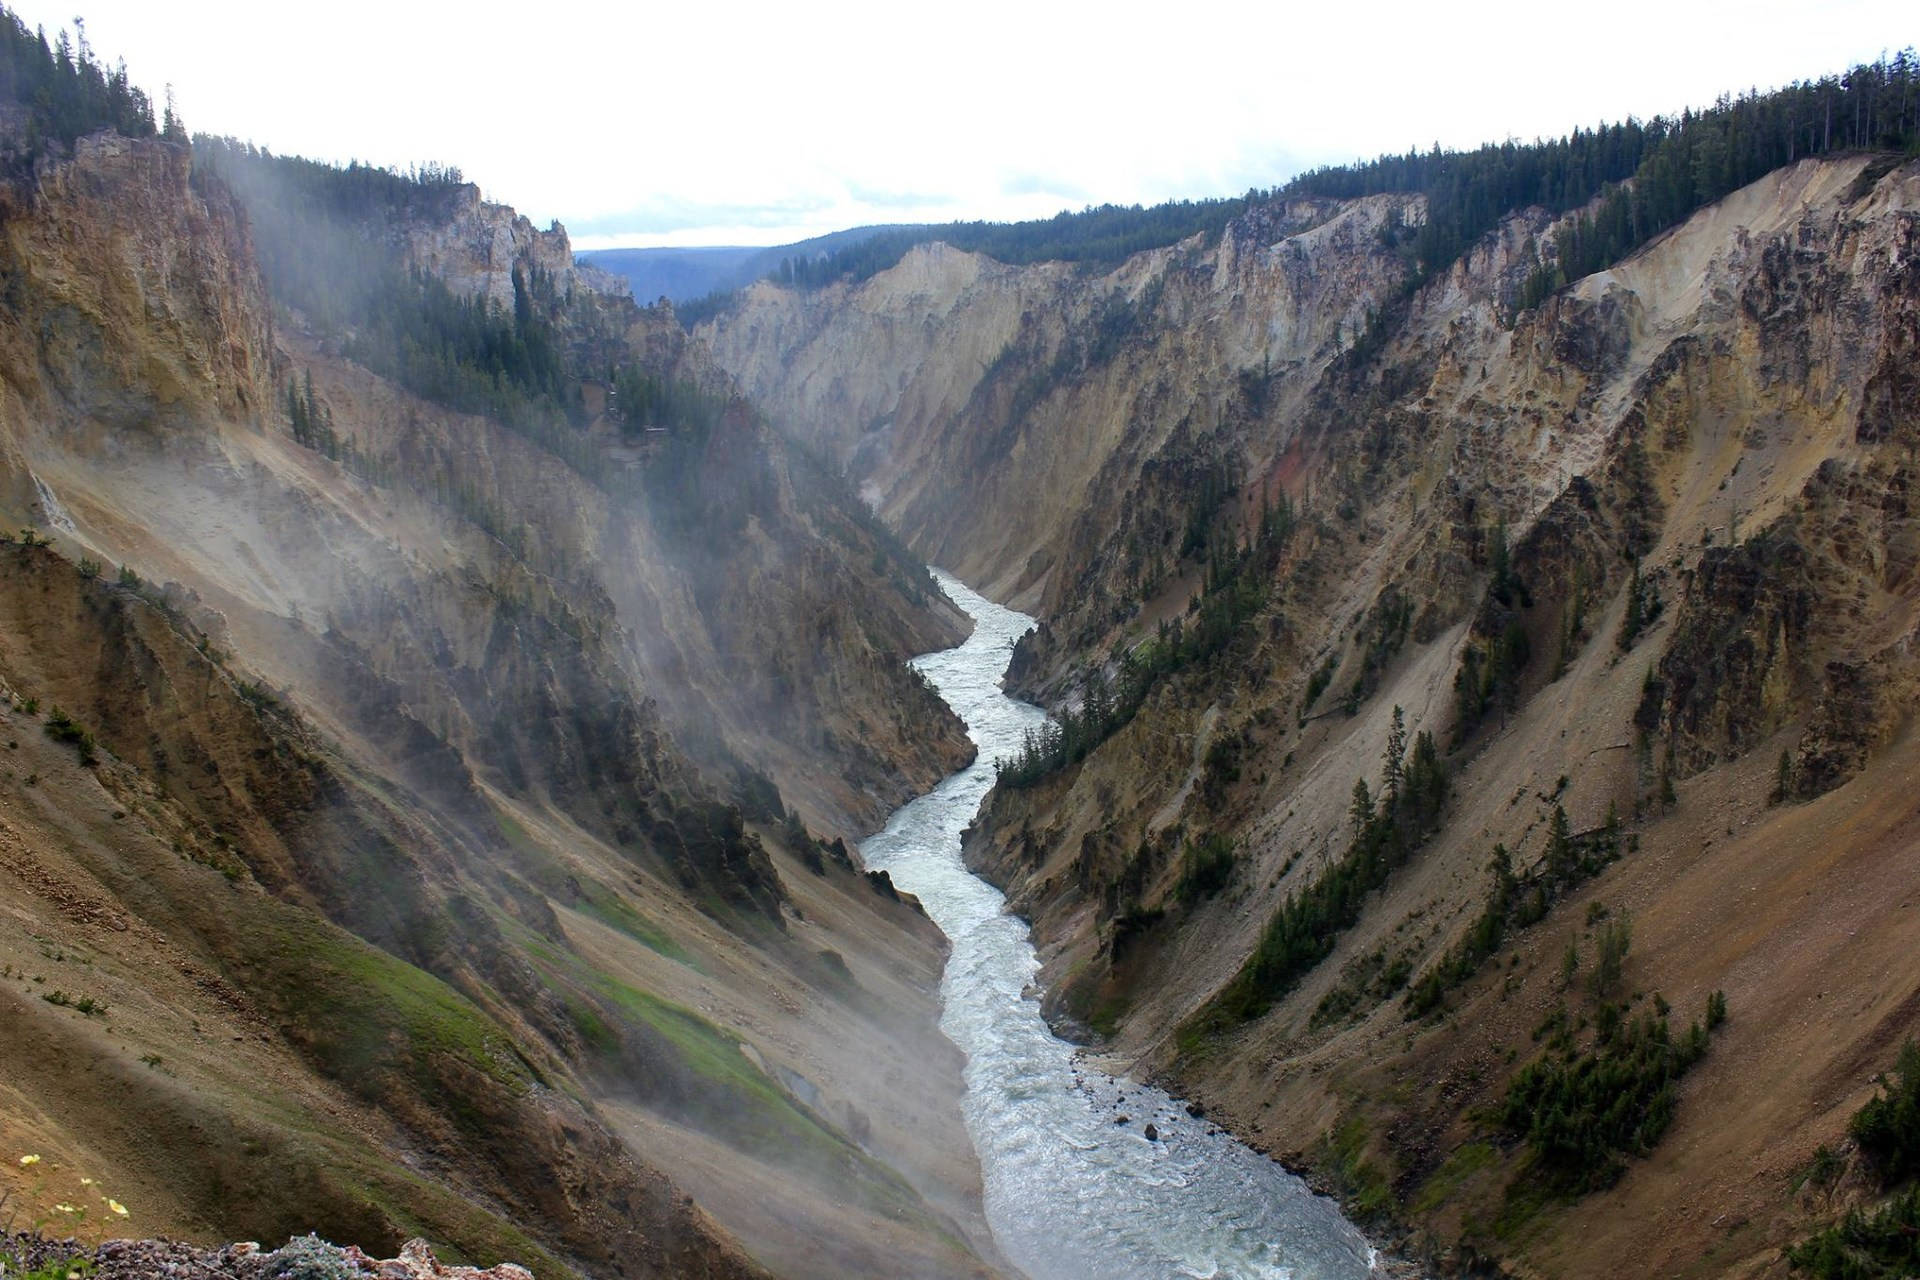 Grand Canyon of the Yellowstone—Yellowstone National Park, Wyoming